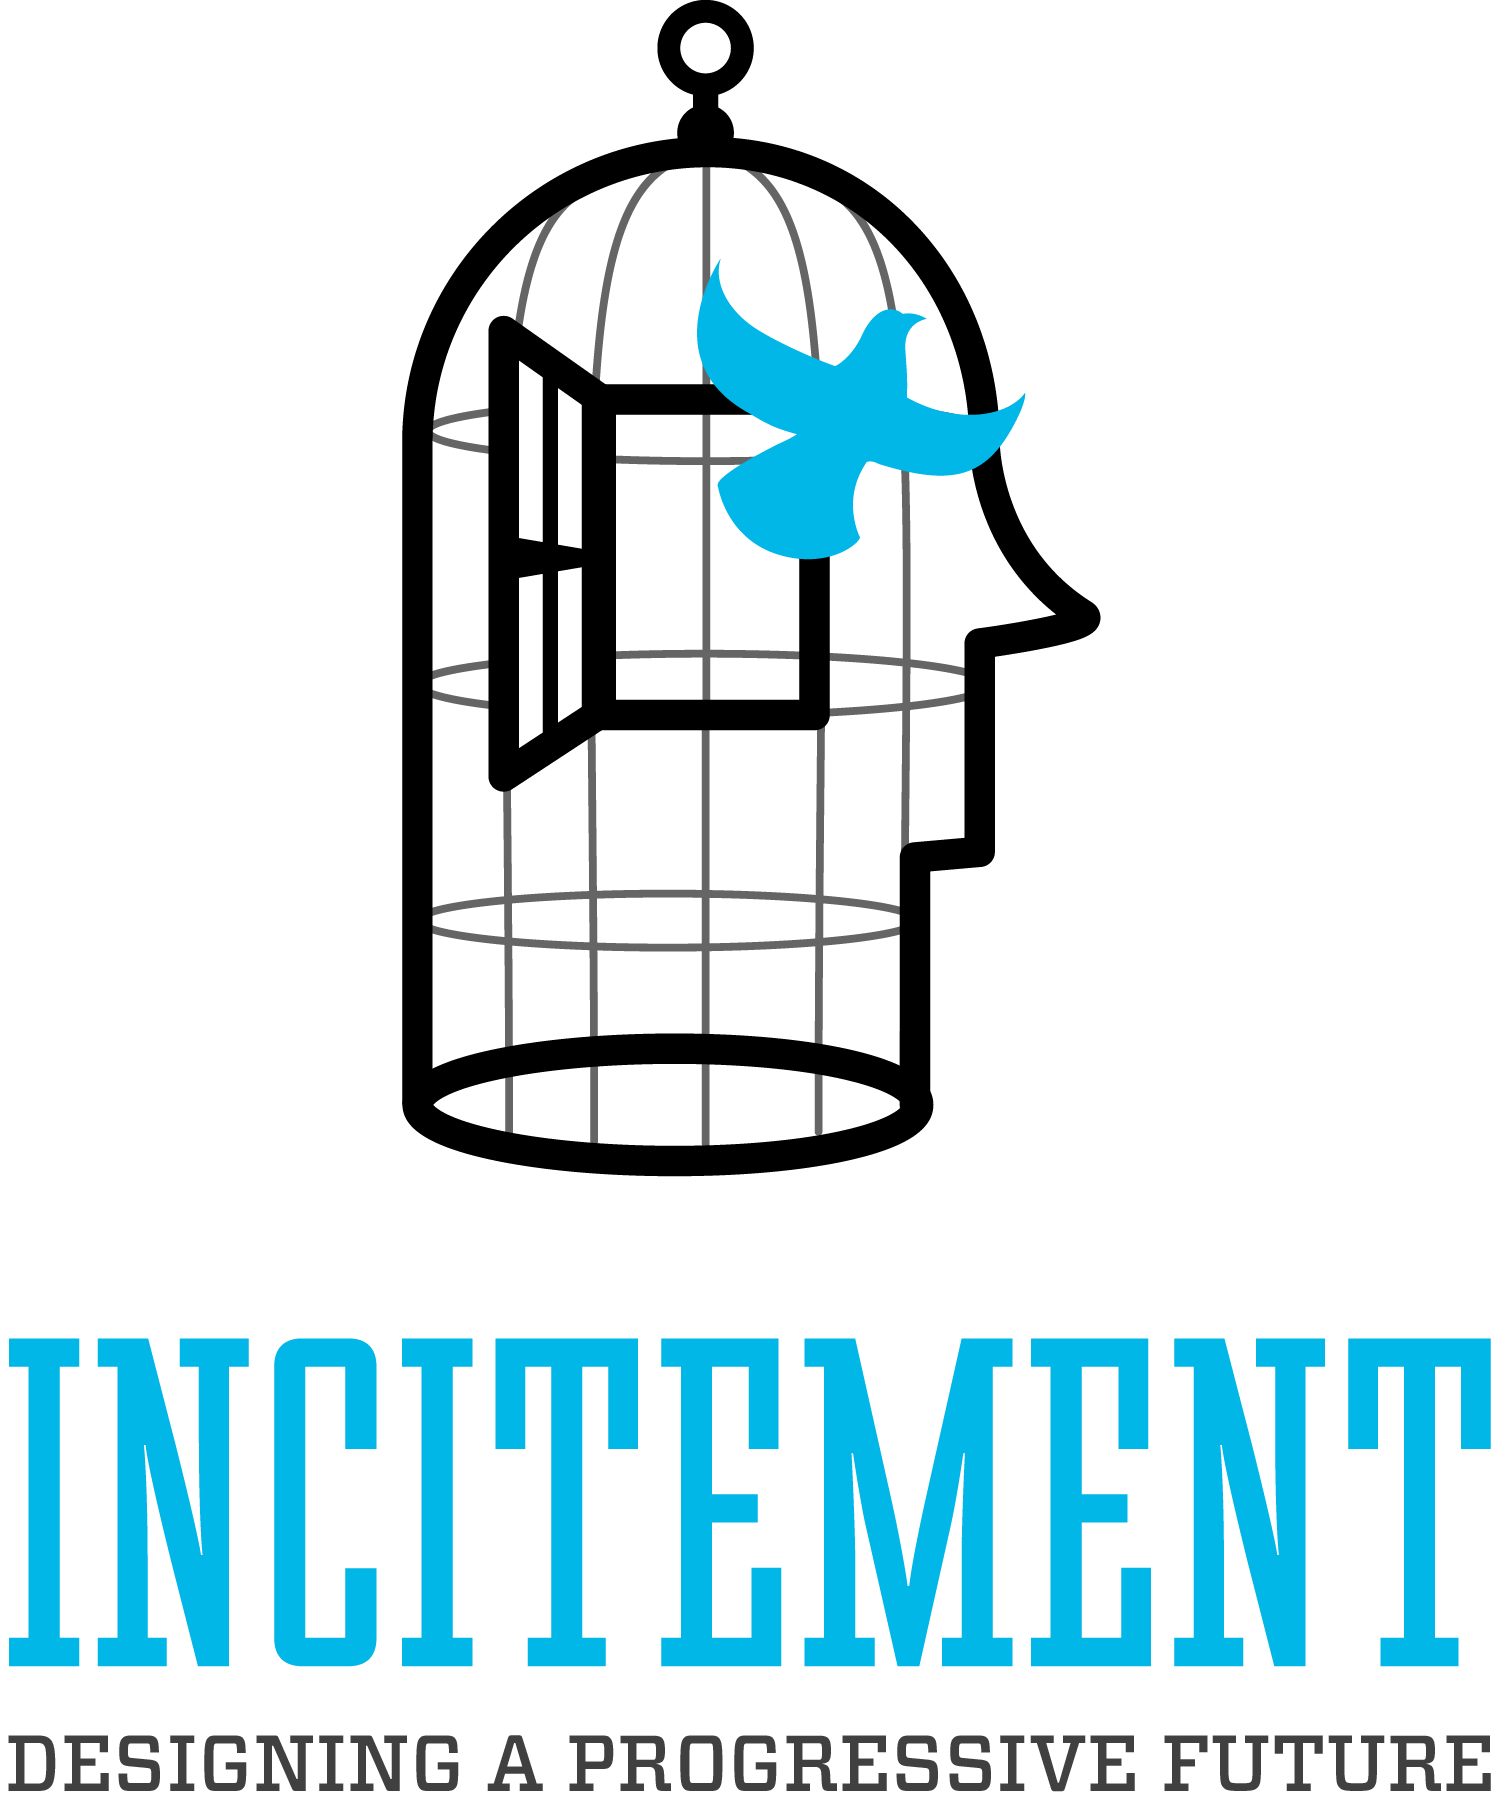 Incitement Design